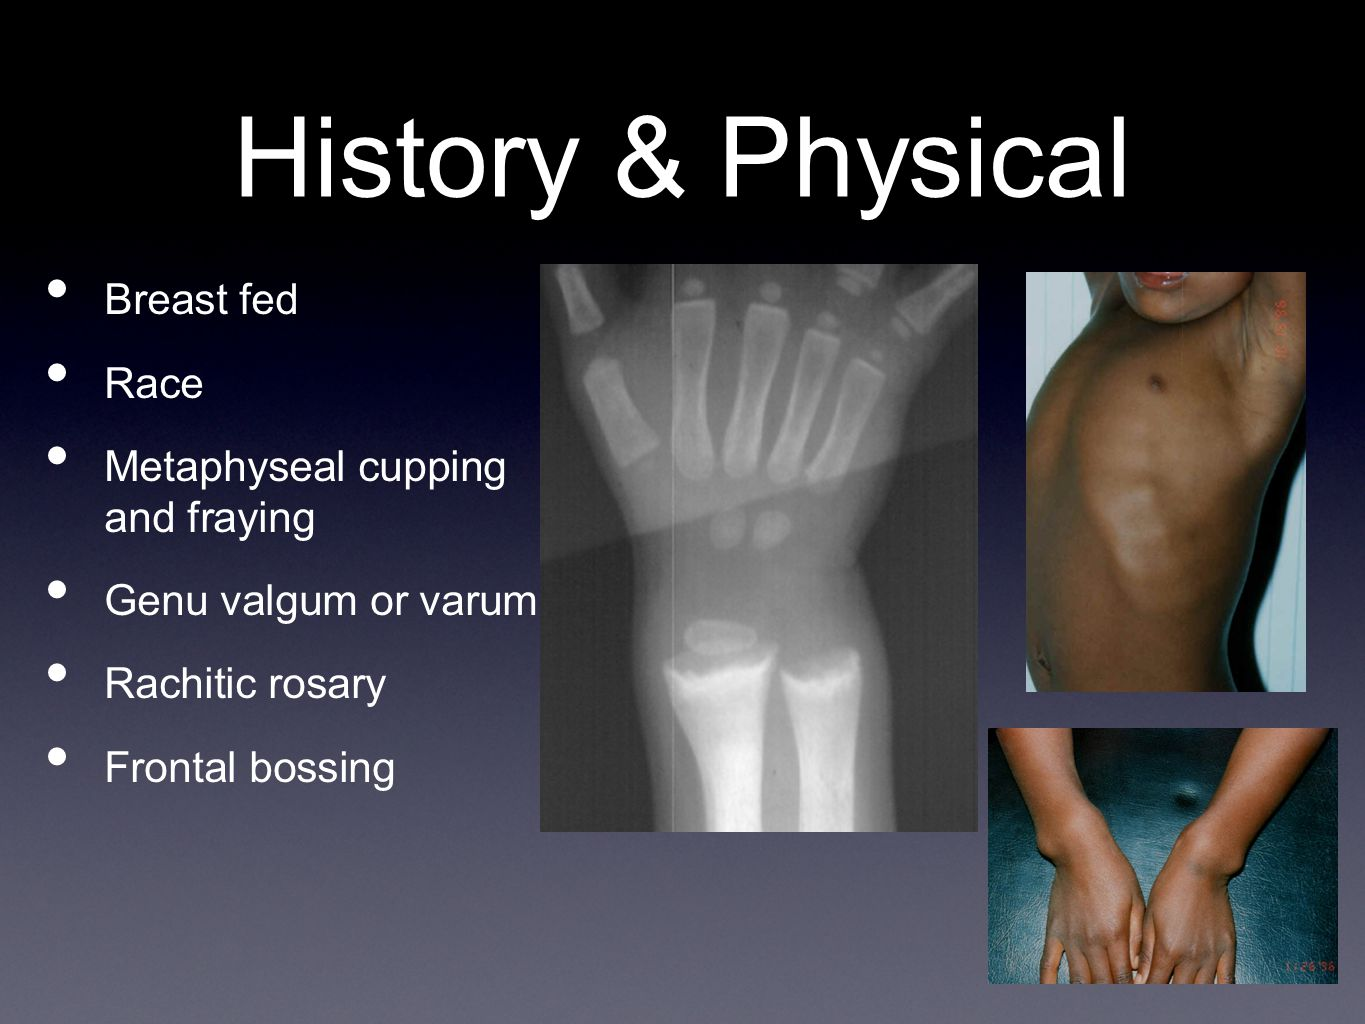 History & Physical Breast fed Race Metaphyseal cupping and fraying Genu valgum or varum Rachitic rosary Frontal bossing